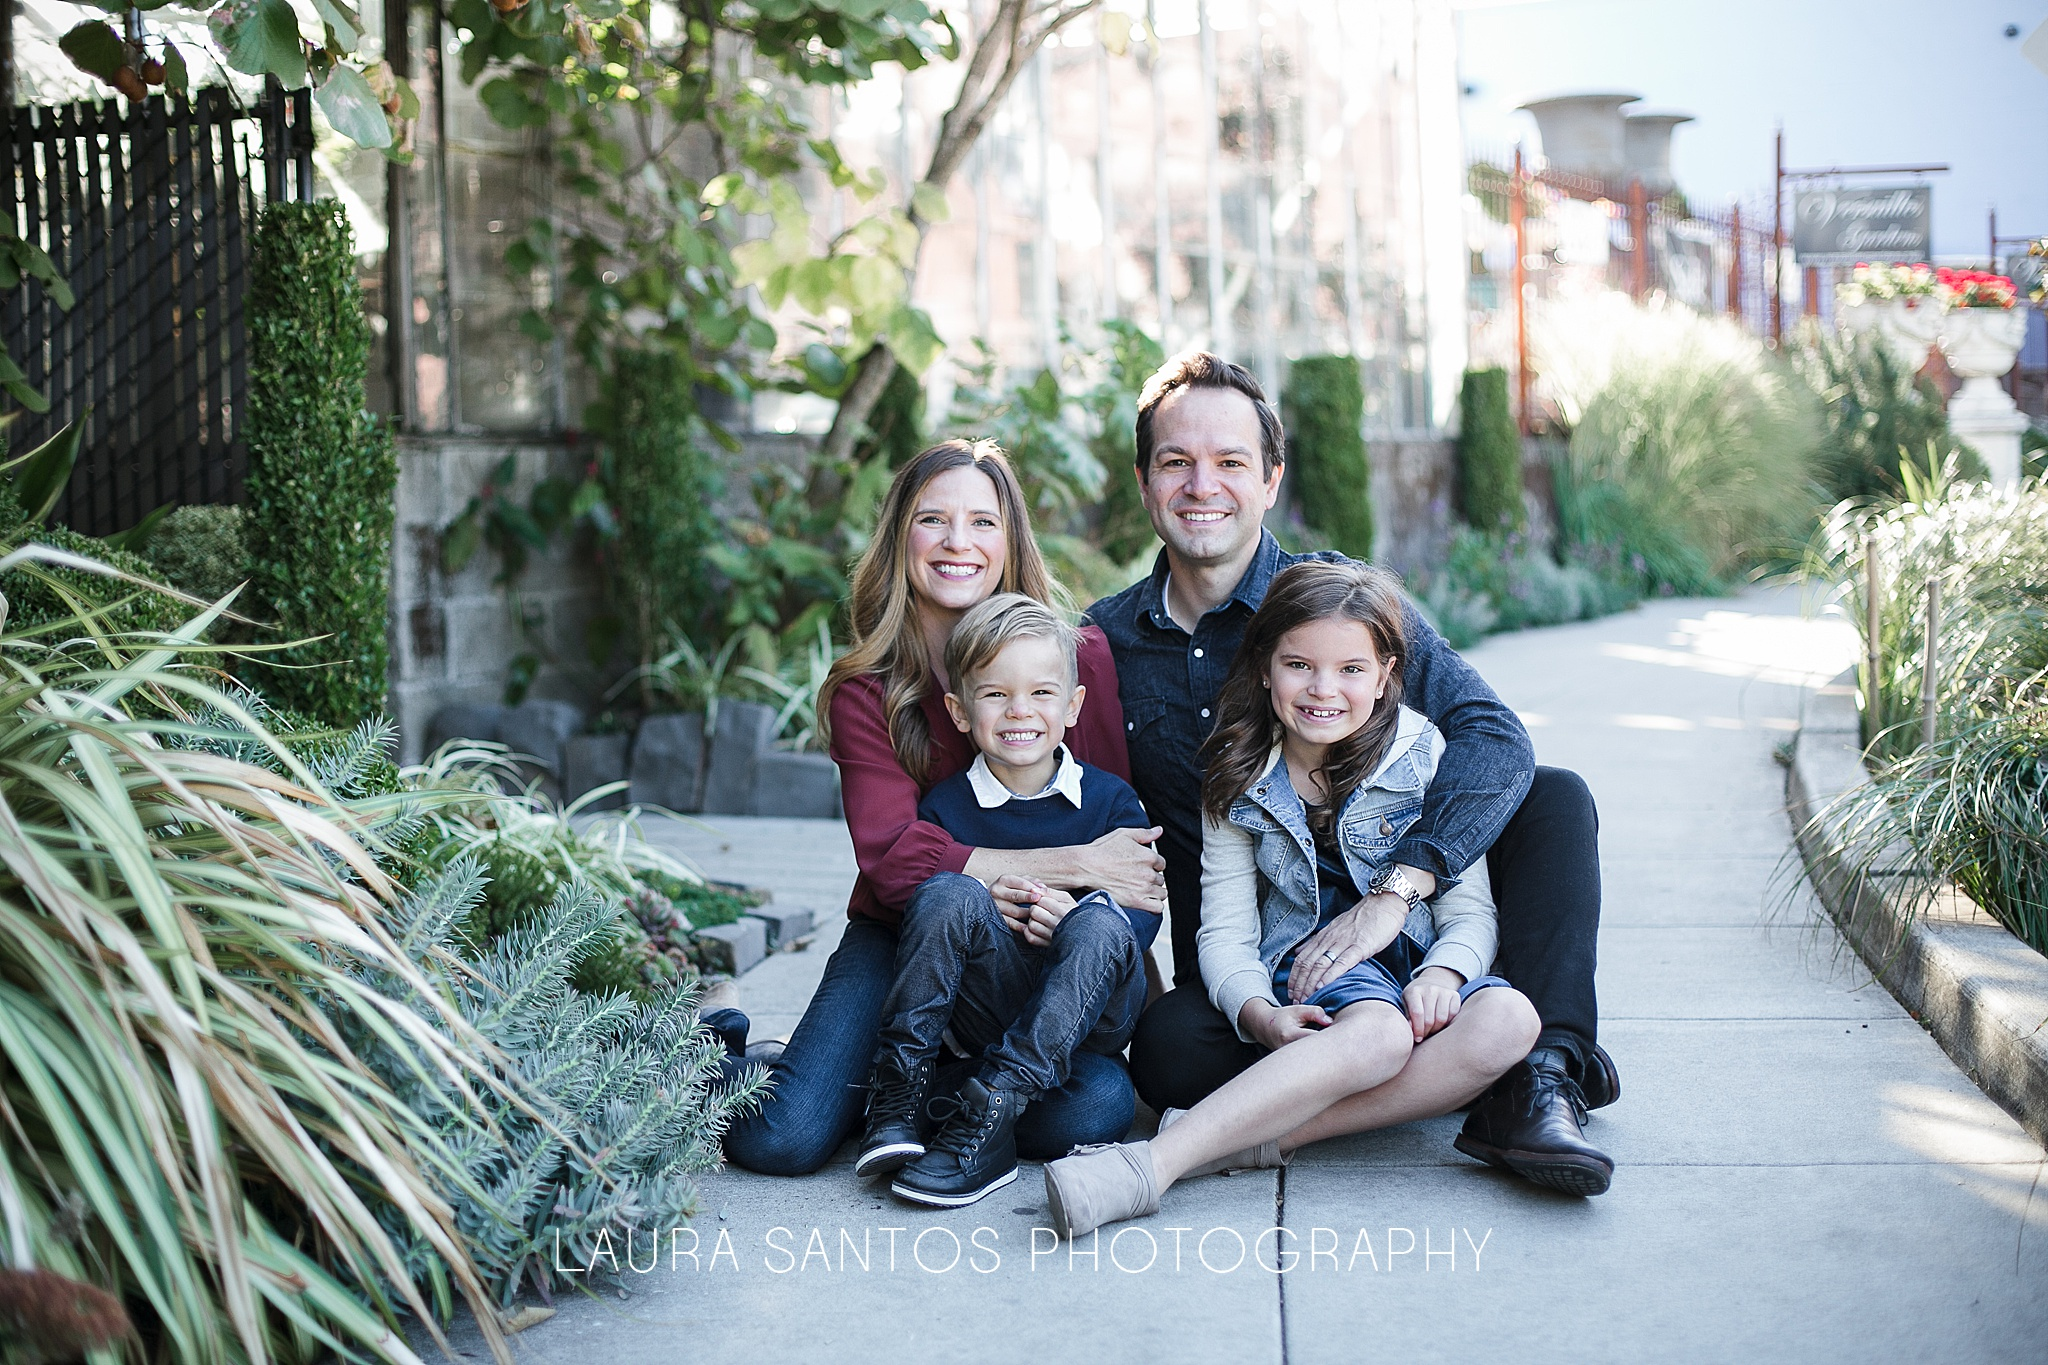 Laura Santos Photography Portland Oregon Family Photographer_0638.jpg